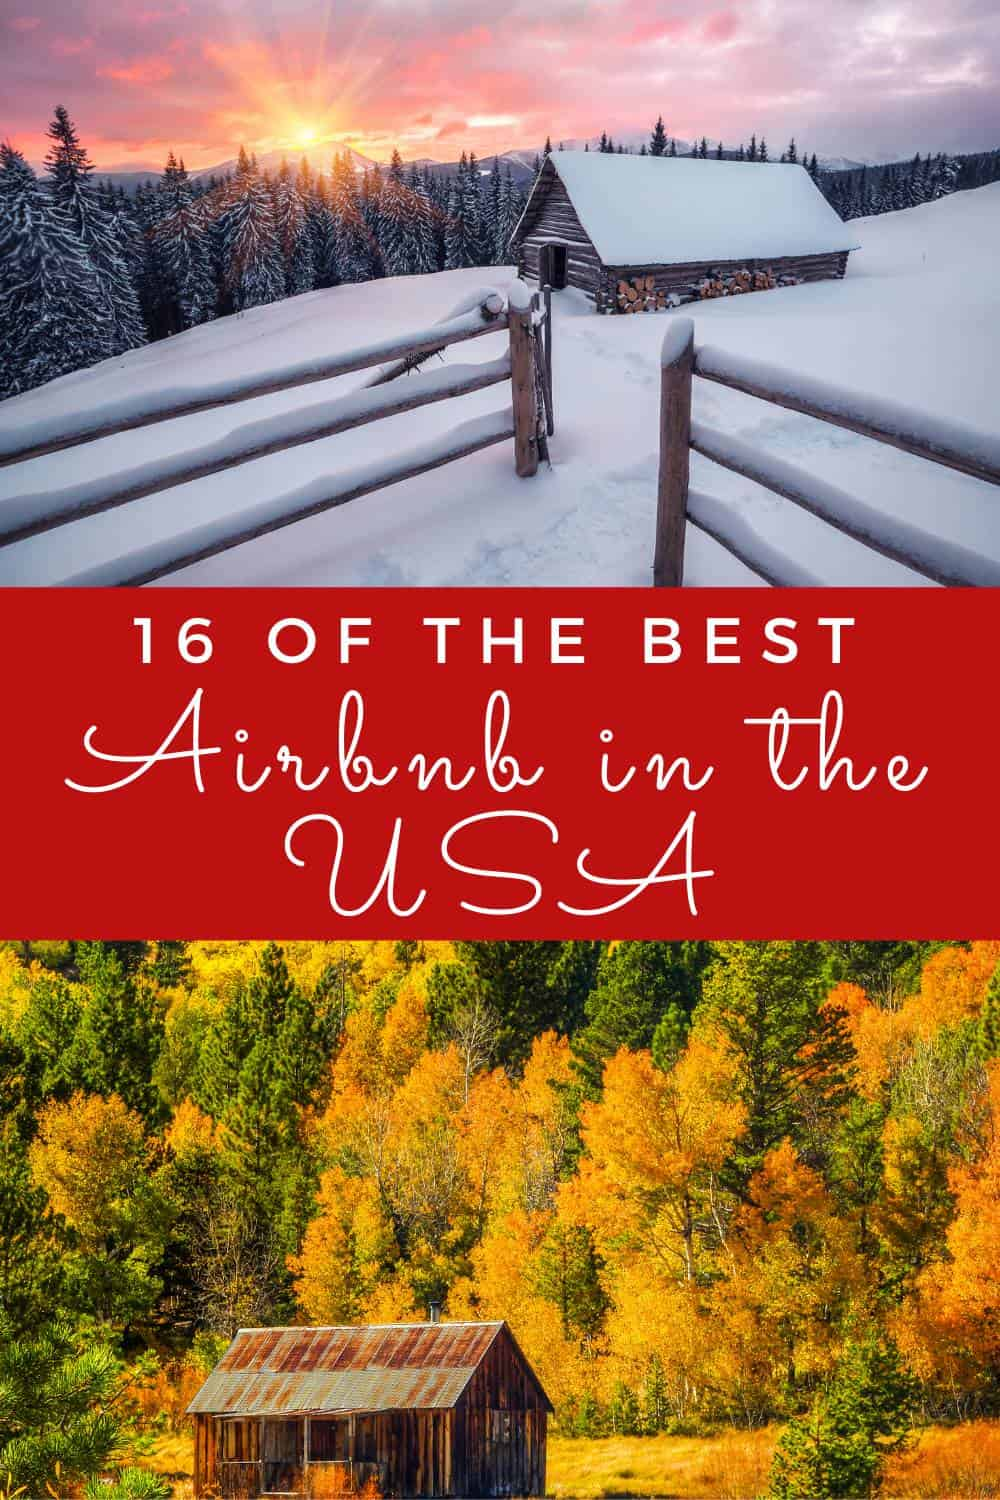 The best Airbnb in the USA